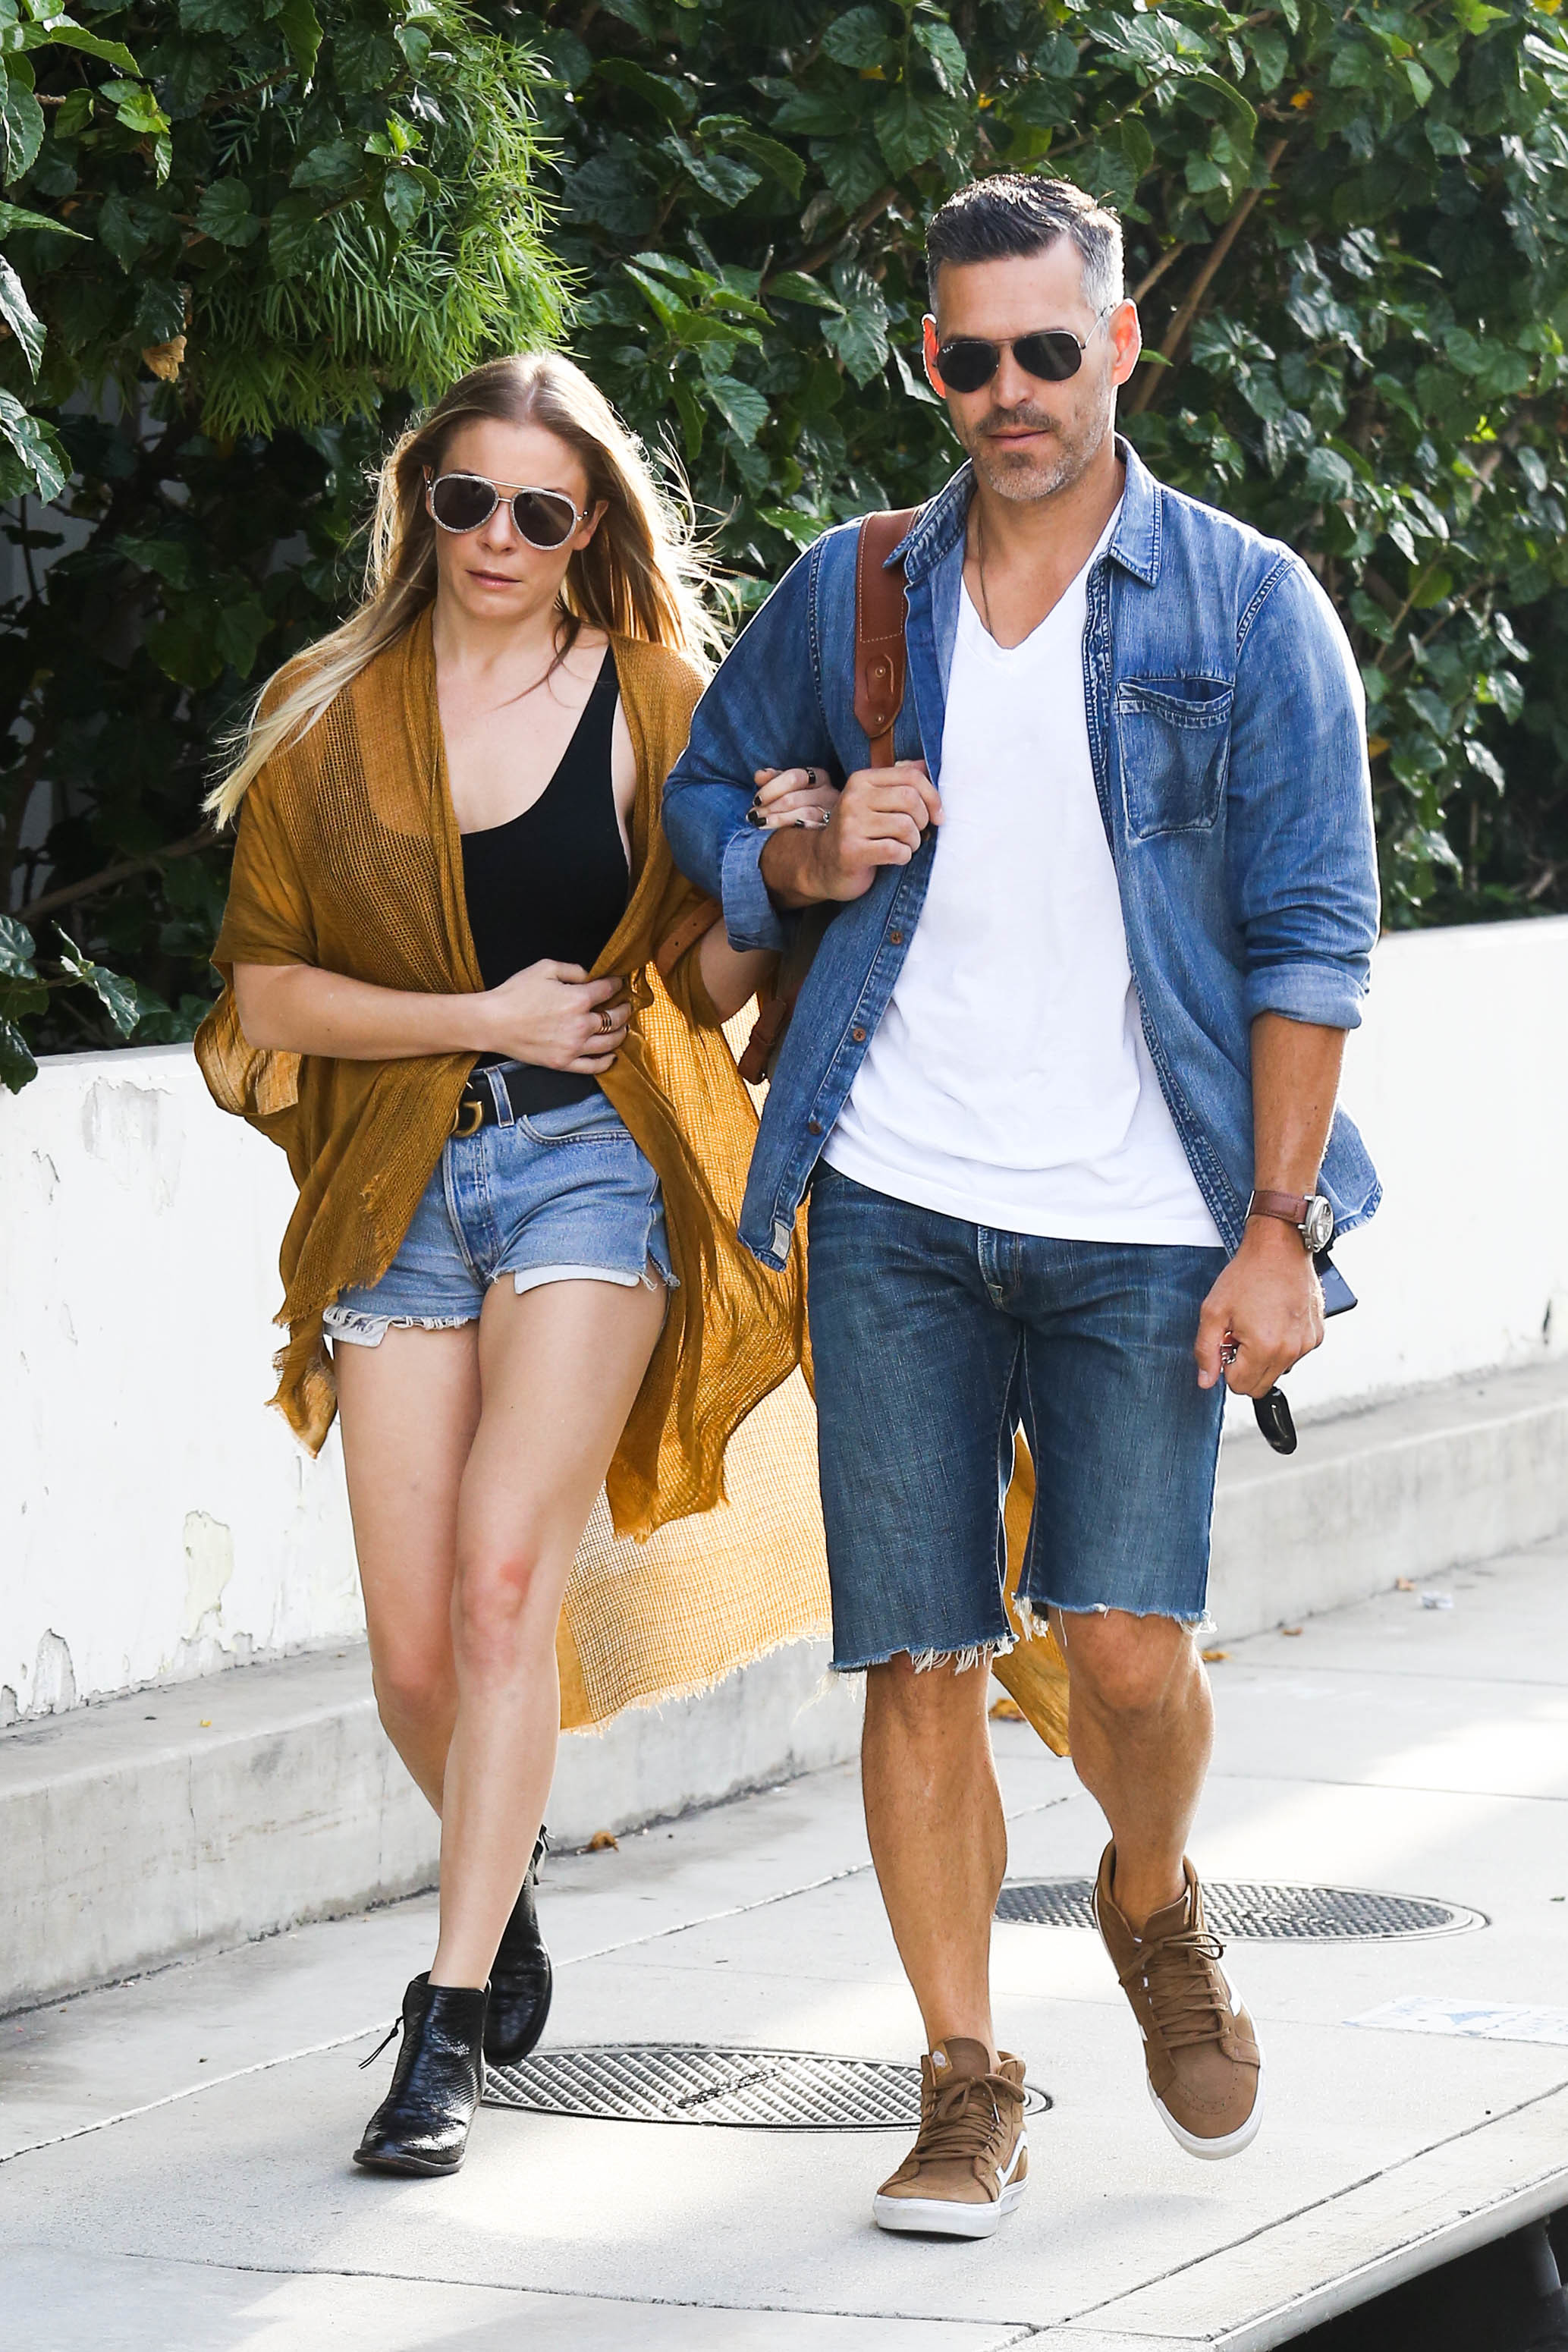 LeAnn Rimes and Eddie Cibrian arrives at LAX international airport in Los Angeles on July 23, 2017.